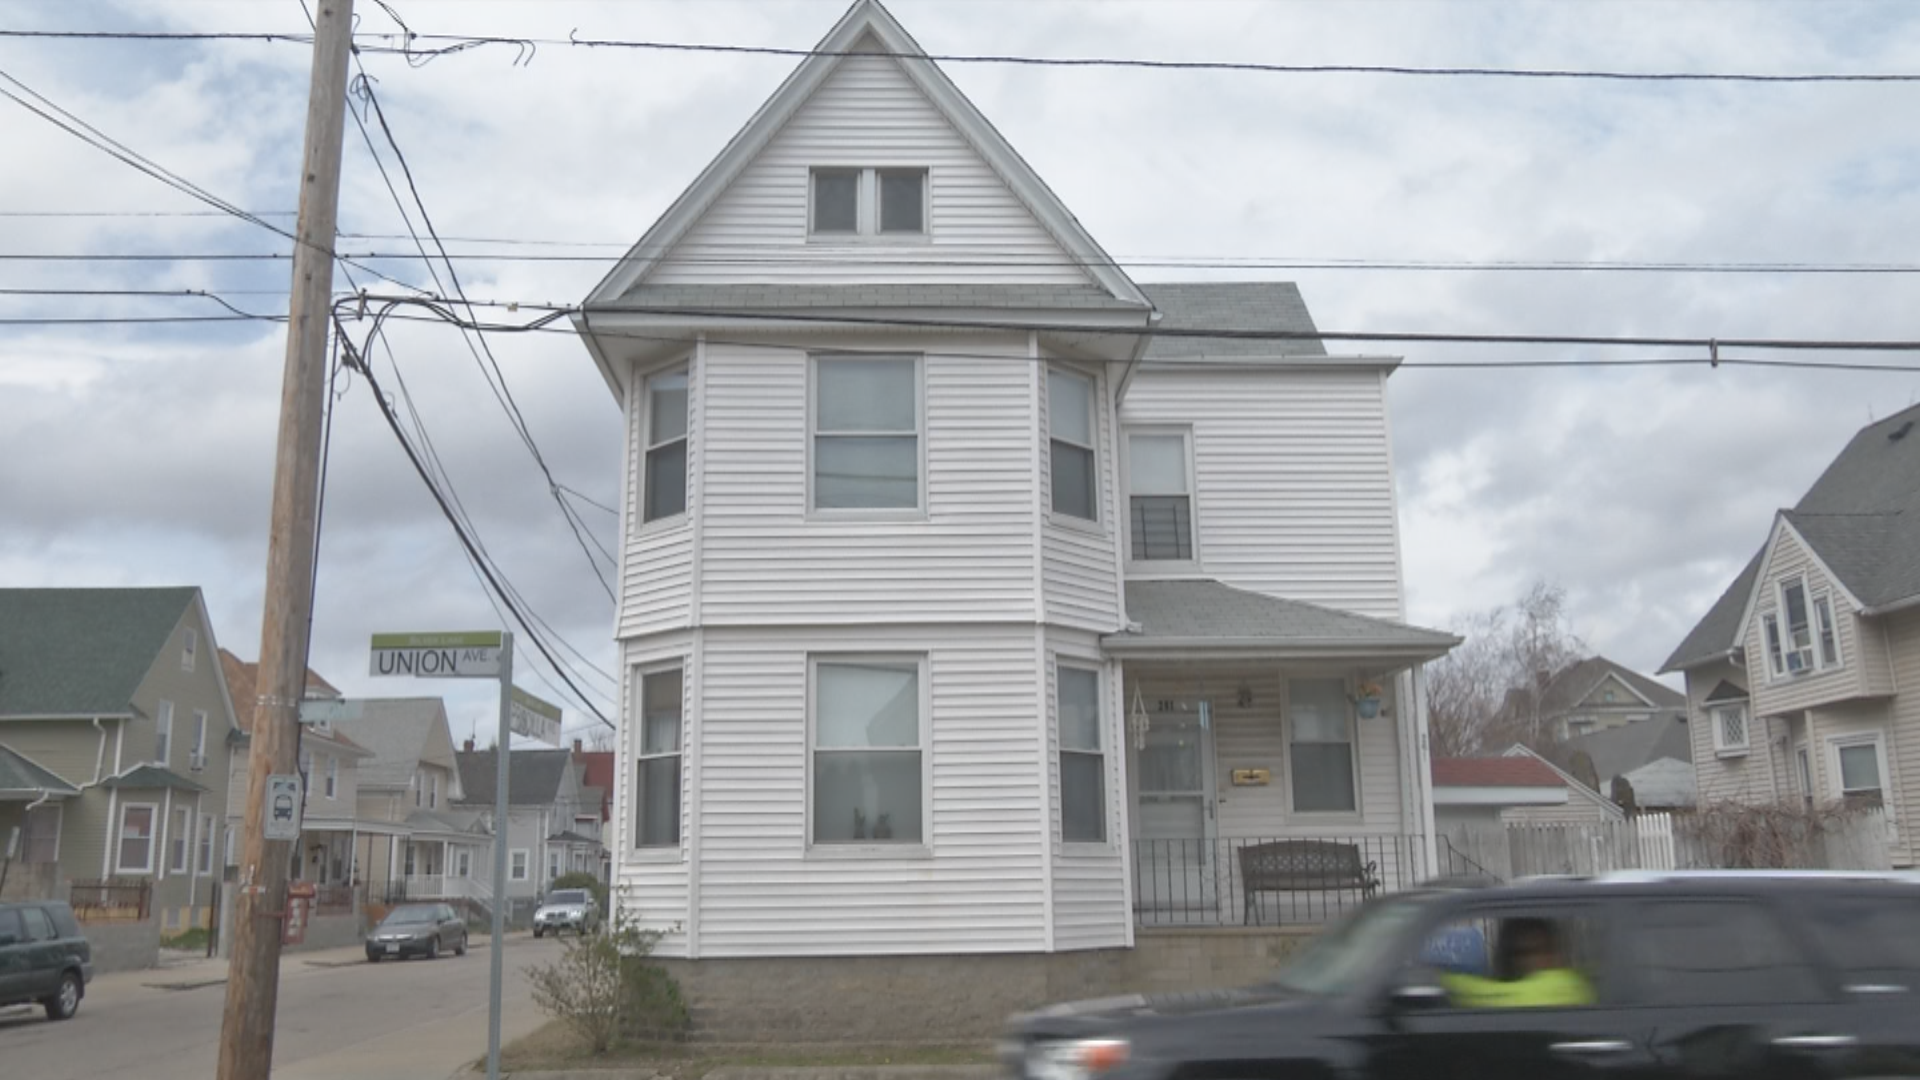 Ginalys Velazquez-Camara gave birth in this building without any medical help. (WJAR){ }